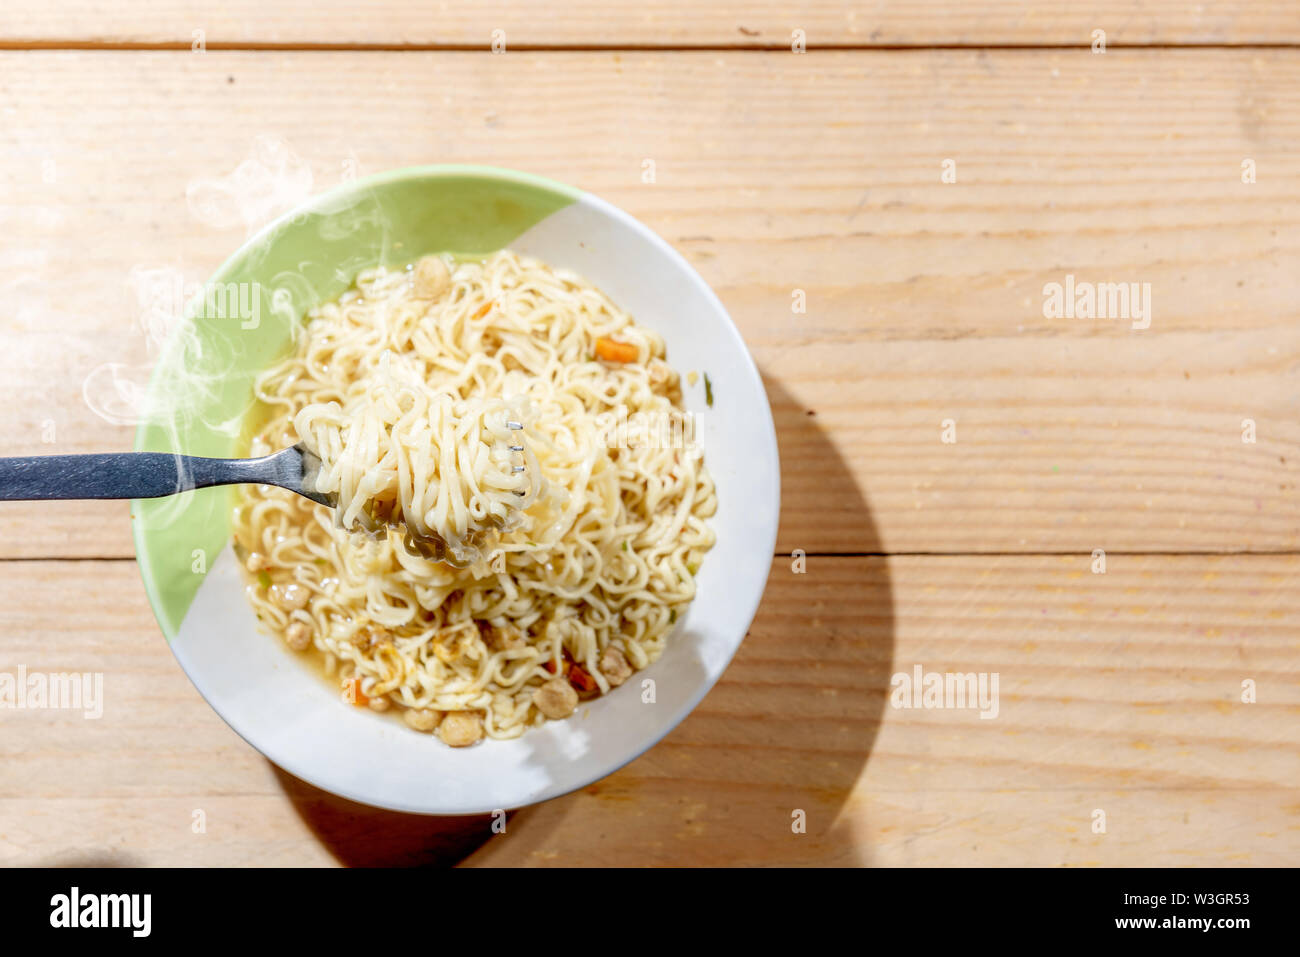 People eat the noodles with fork on wooden table background - Stock Image